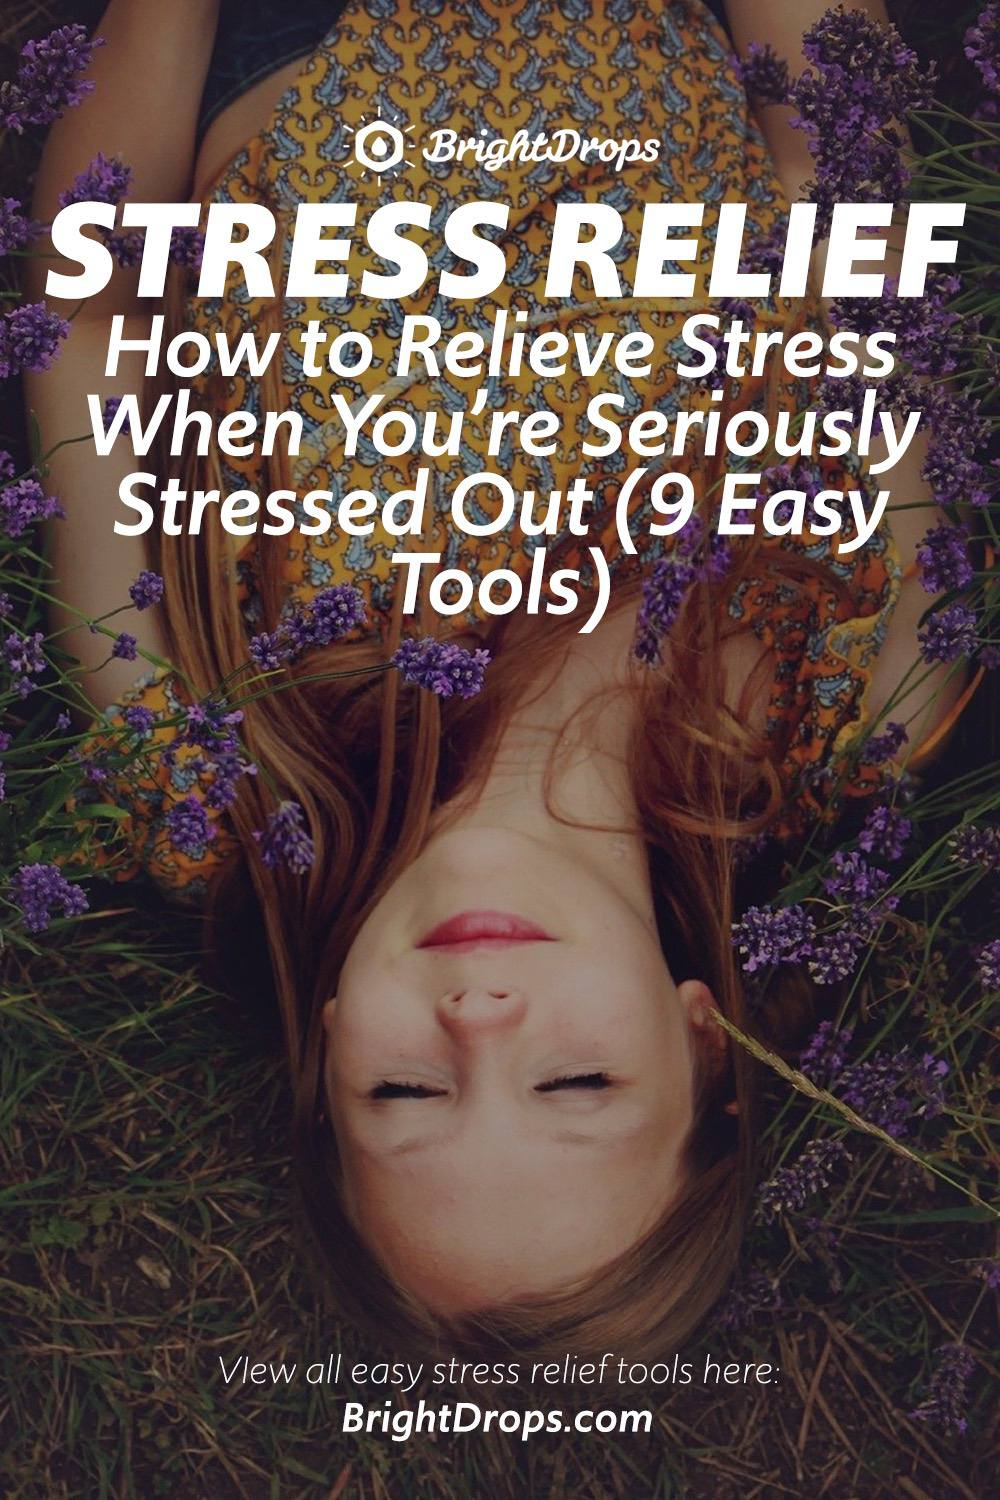 How to Relieve Stress When You're Seriously Stressed Out